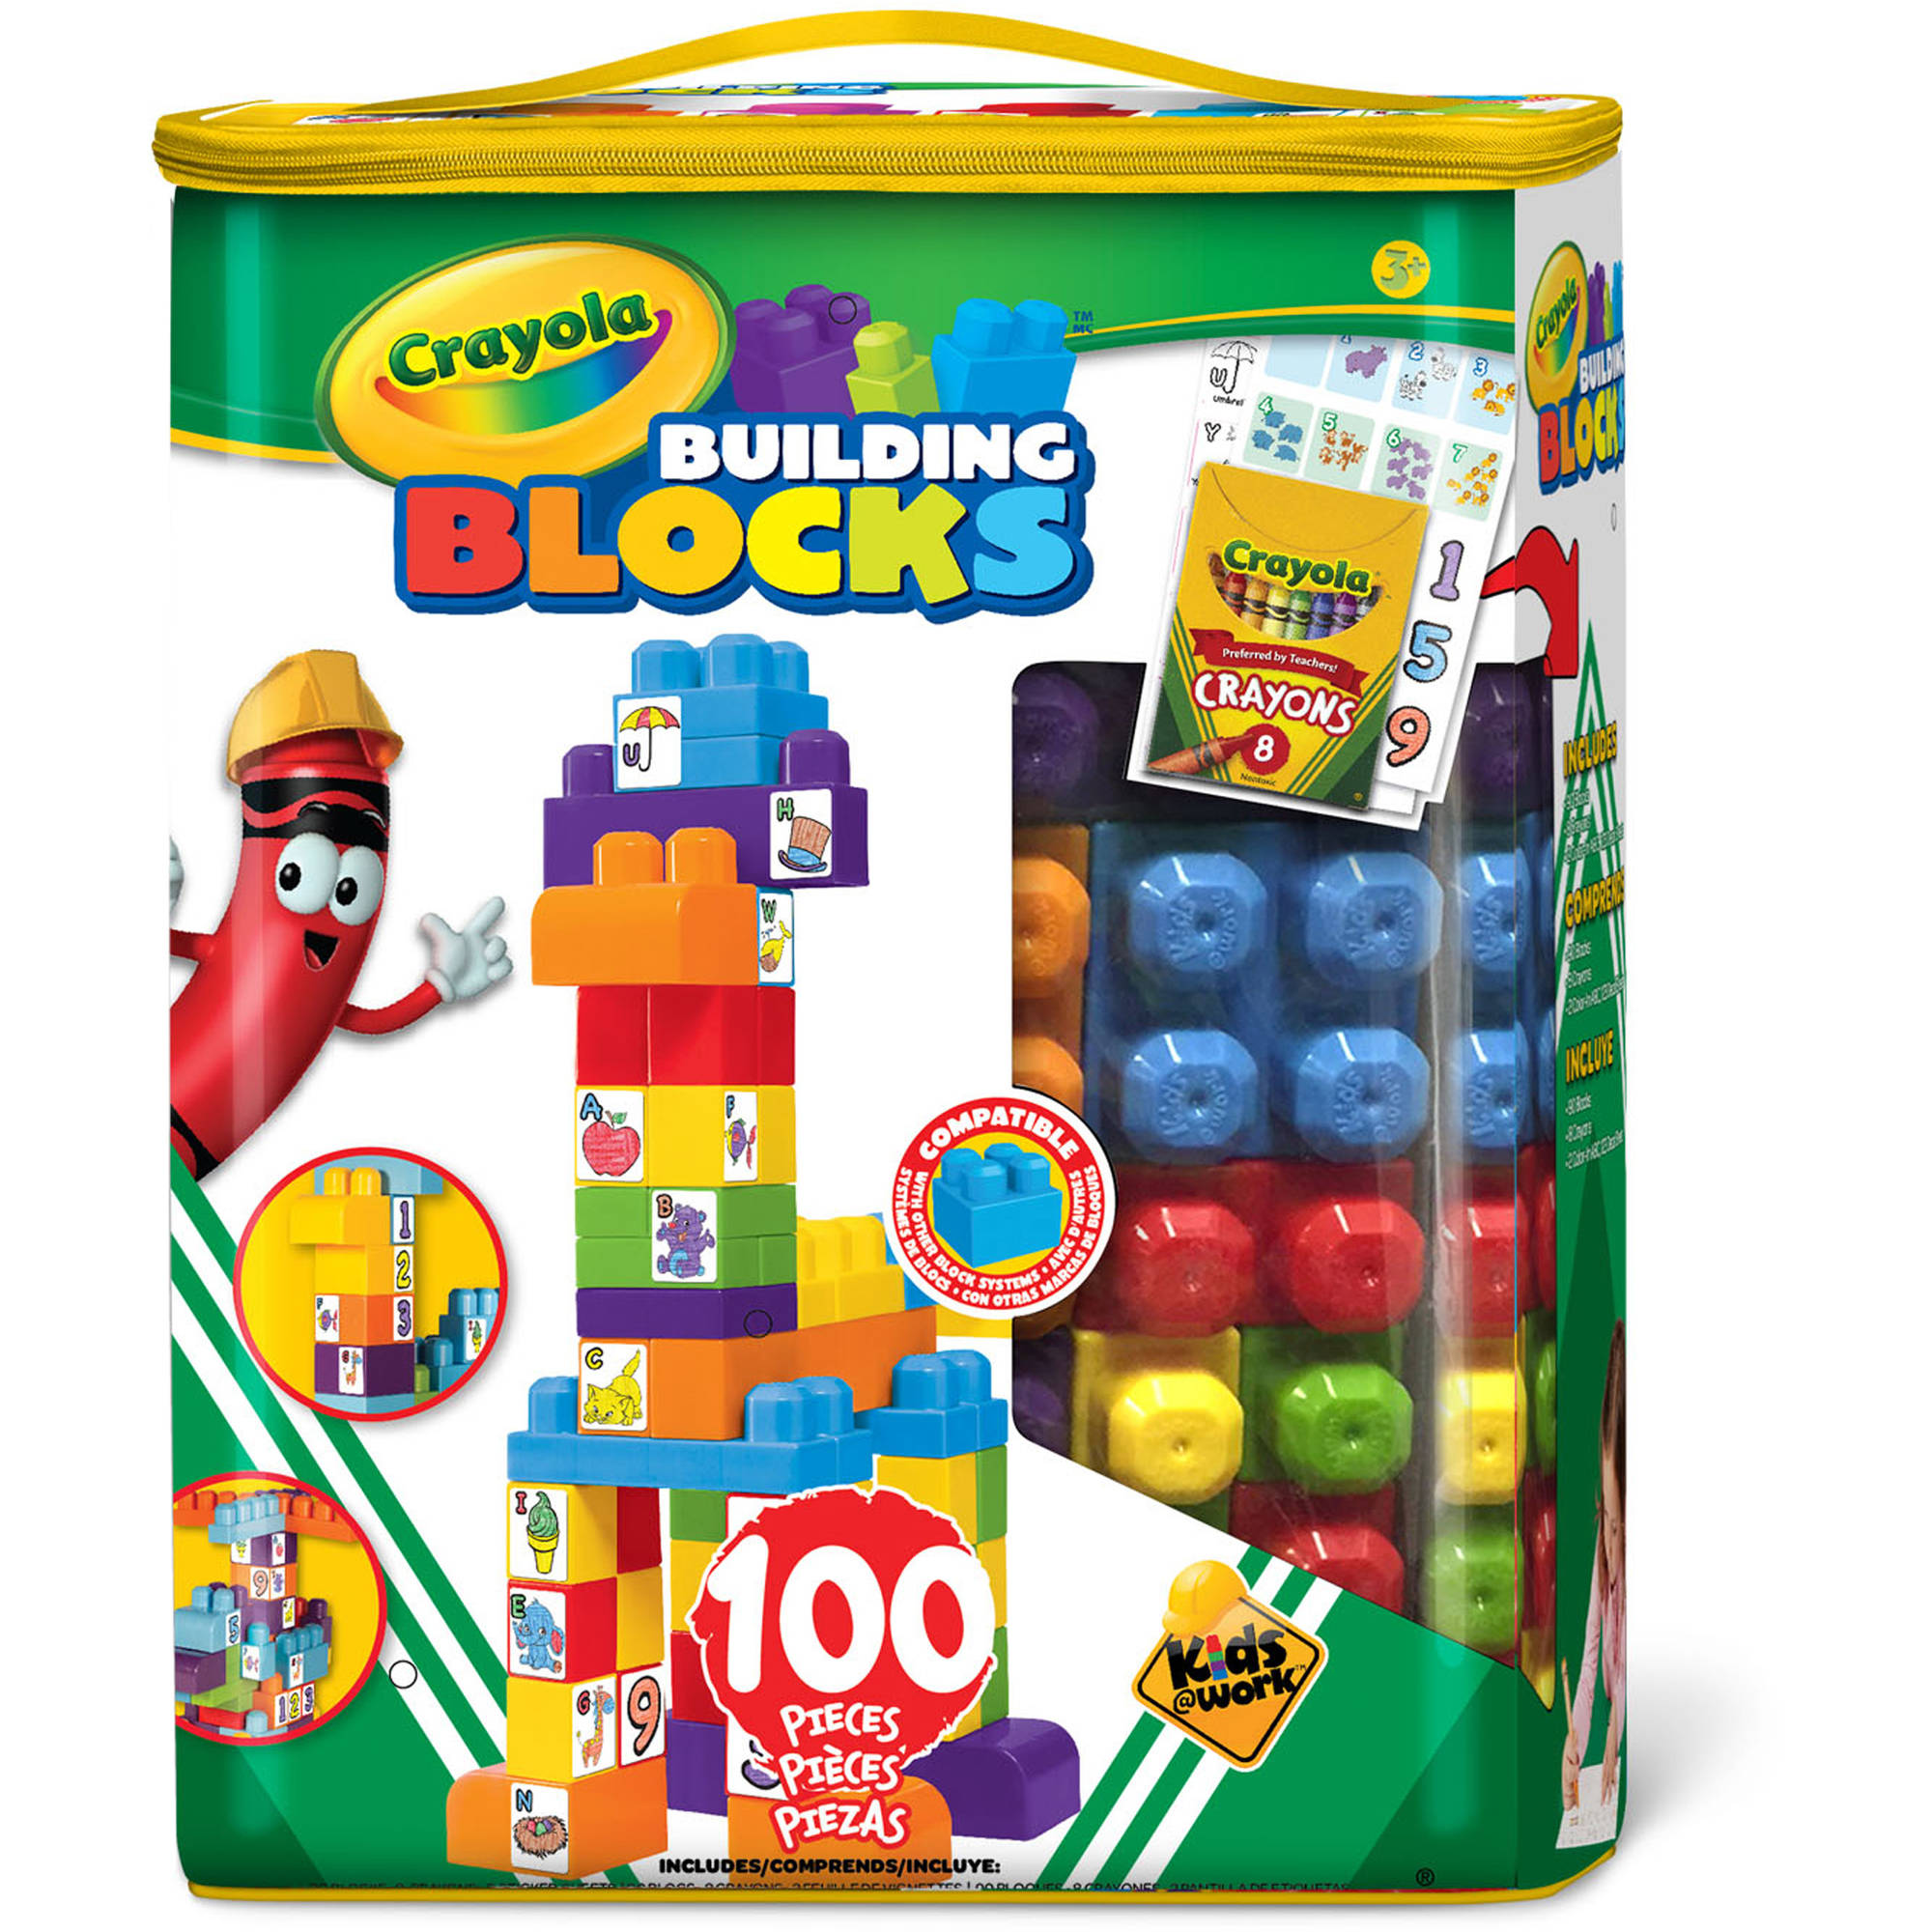 Crayola Kids@Work 100 pc Tote w 90 Blocks & Bonus 8 Crayons, 2 Decal SHeets by Amloid Corporation